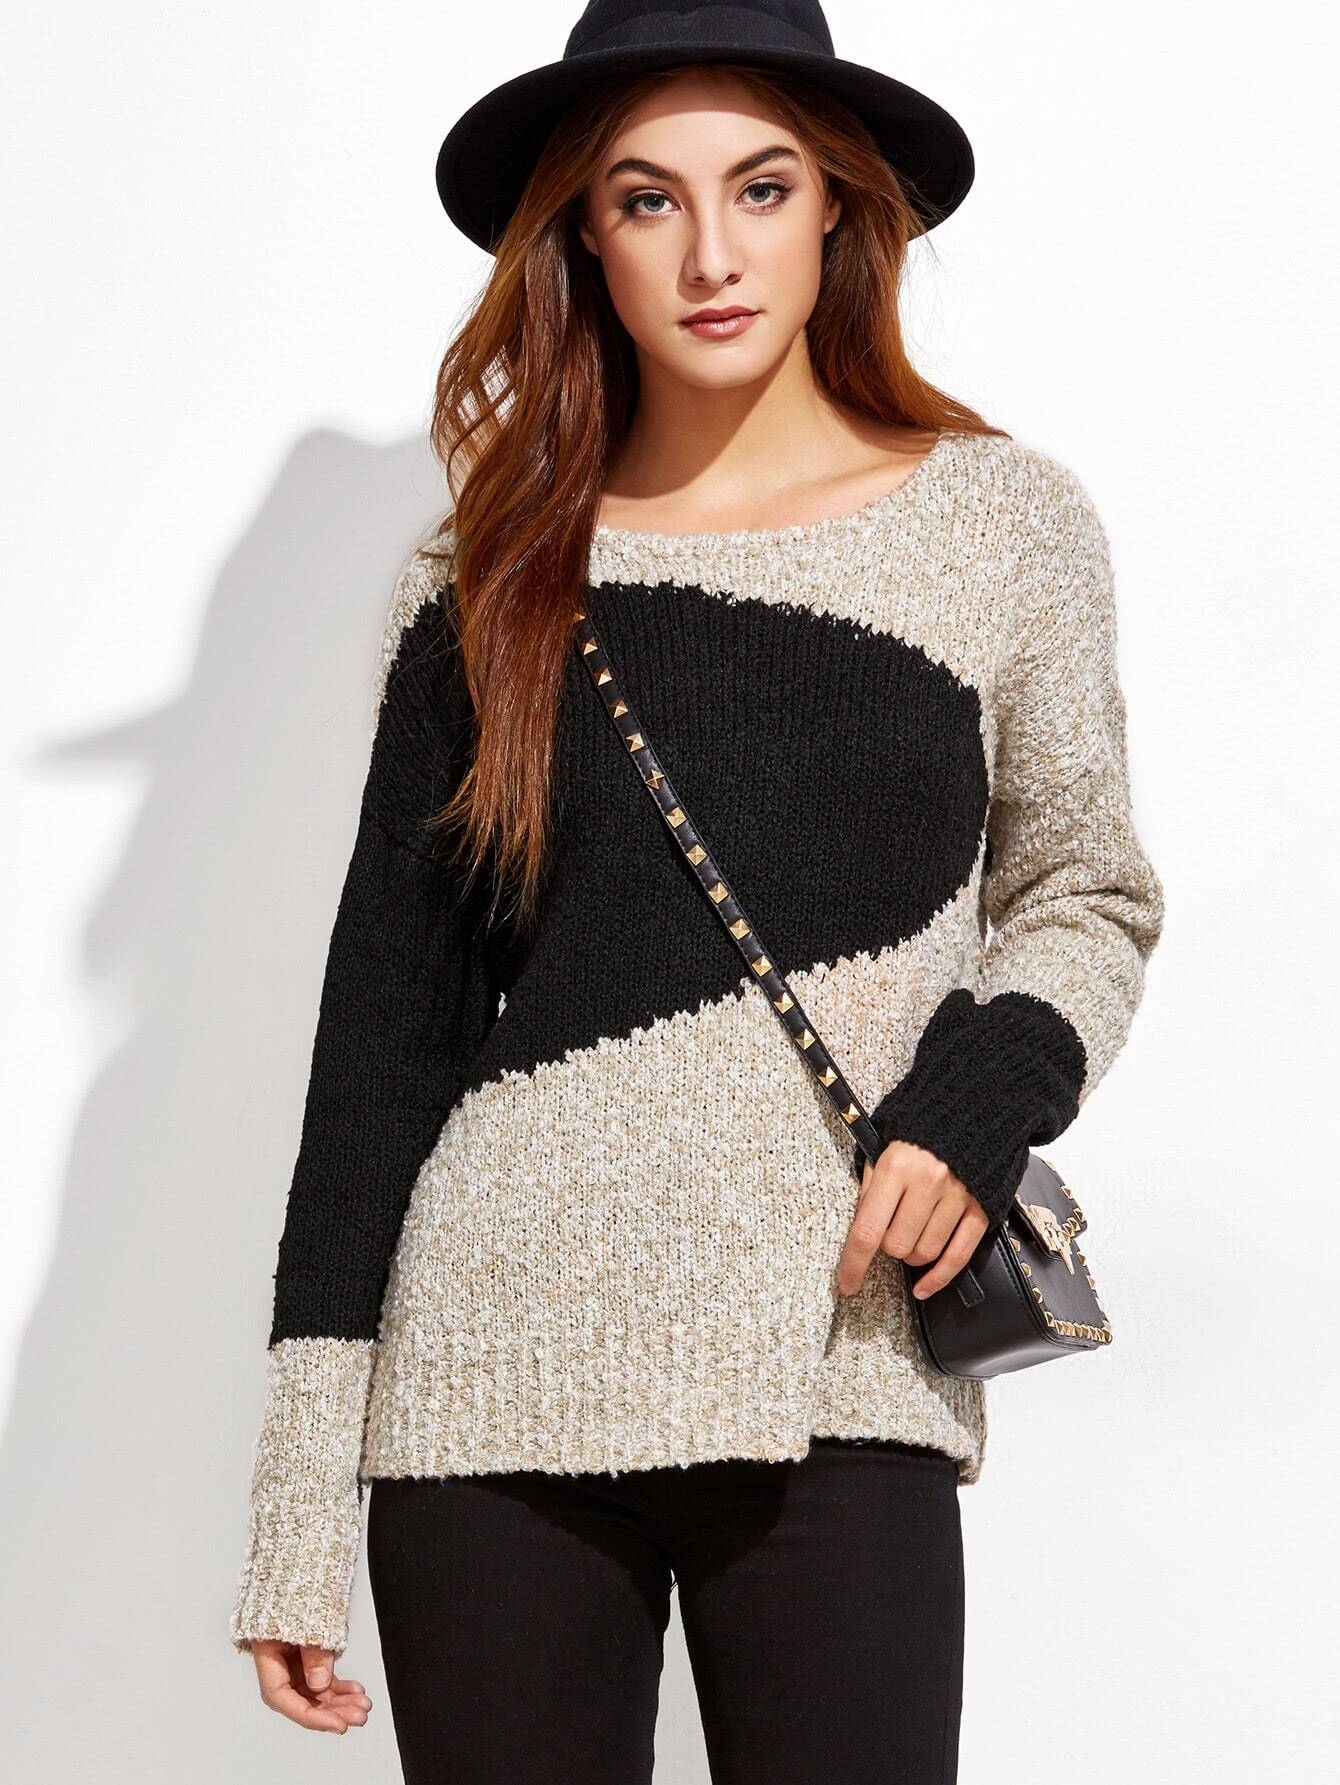 Contrast Marled Knit Drop Shoulder Sweater sweater160930452